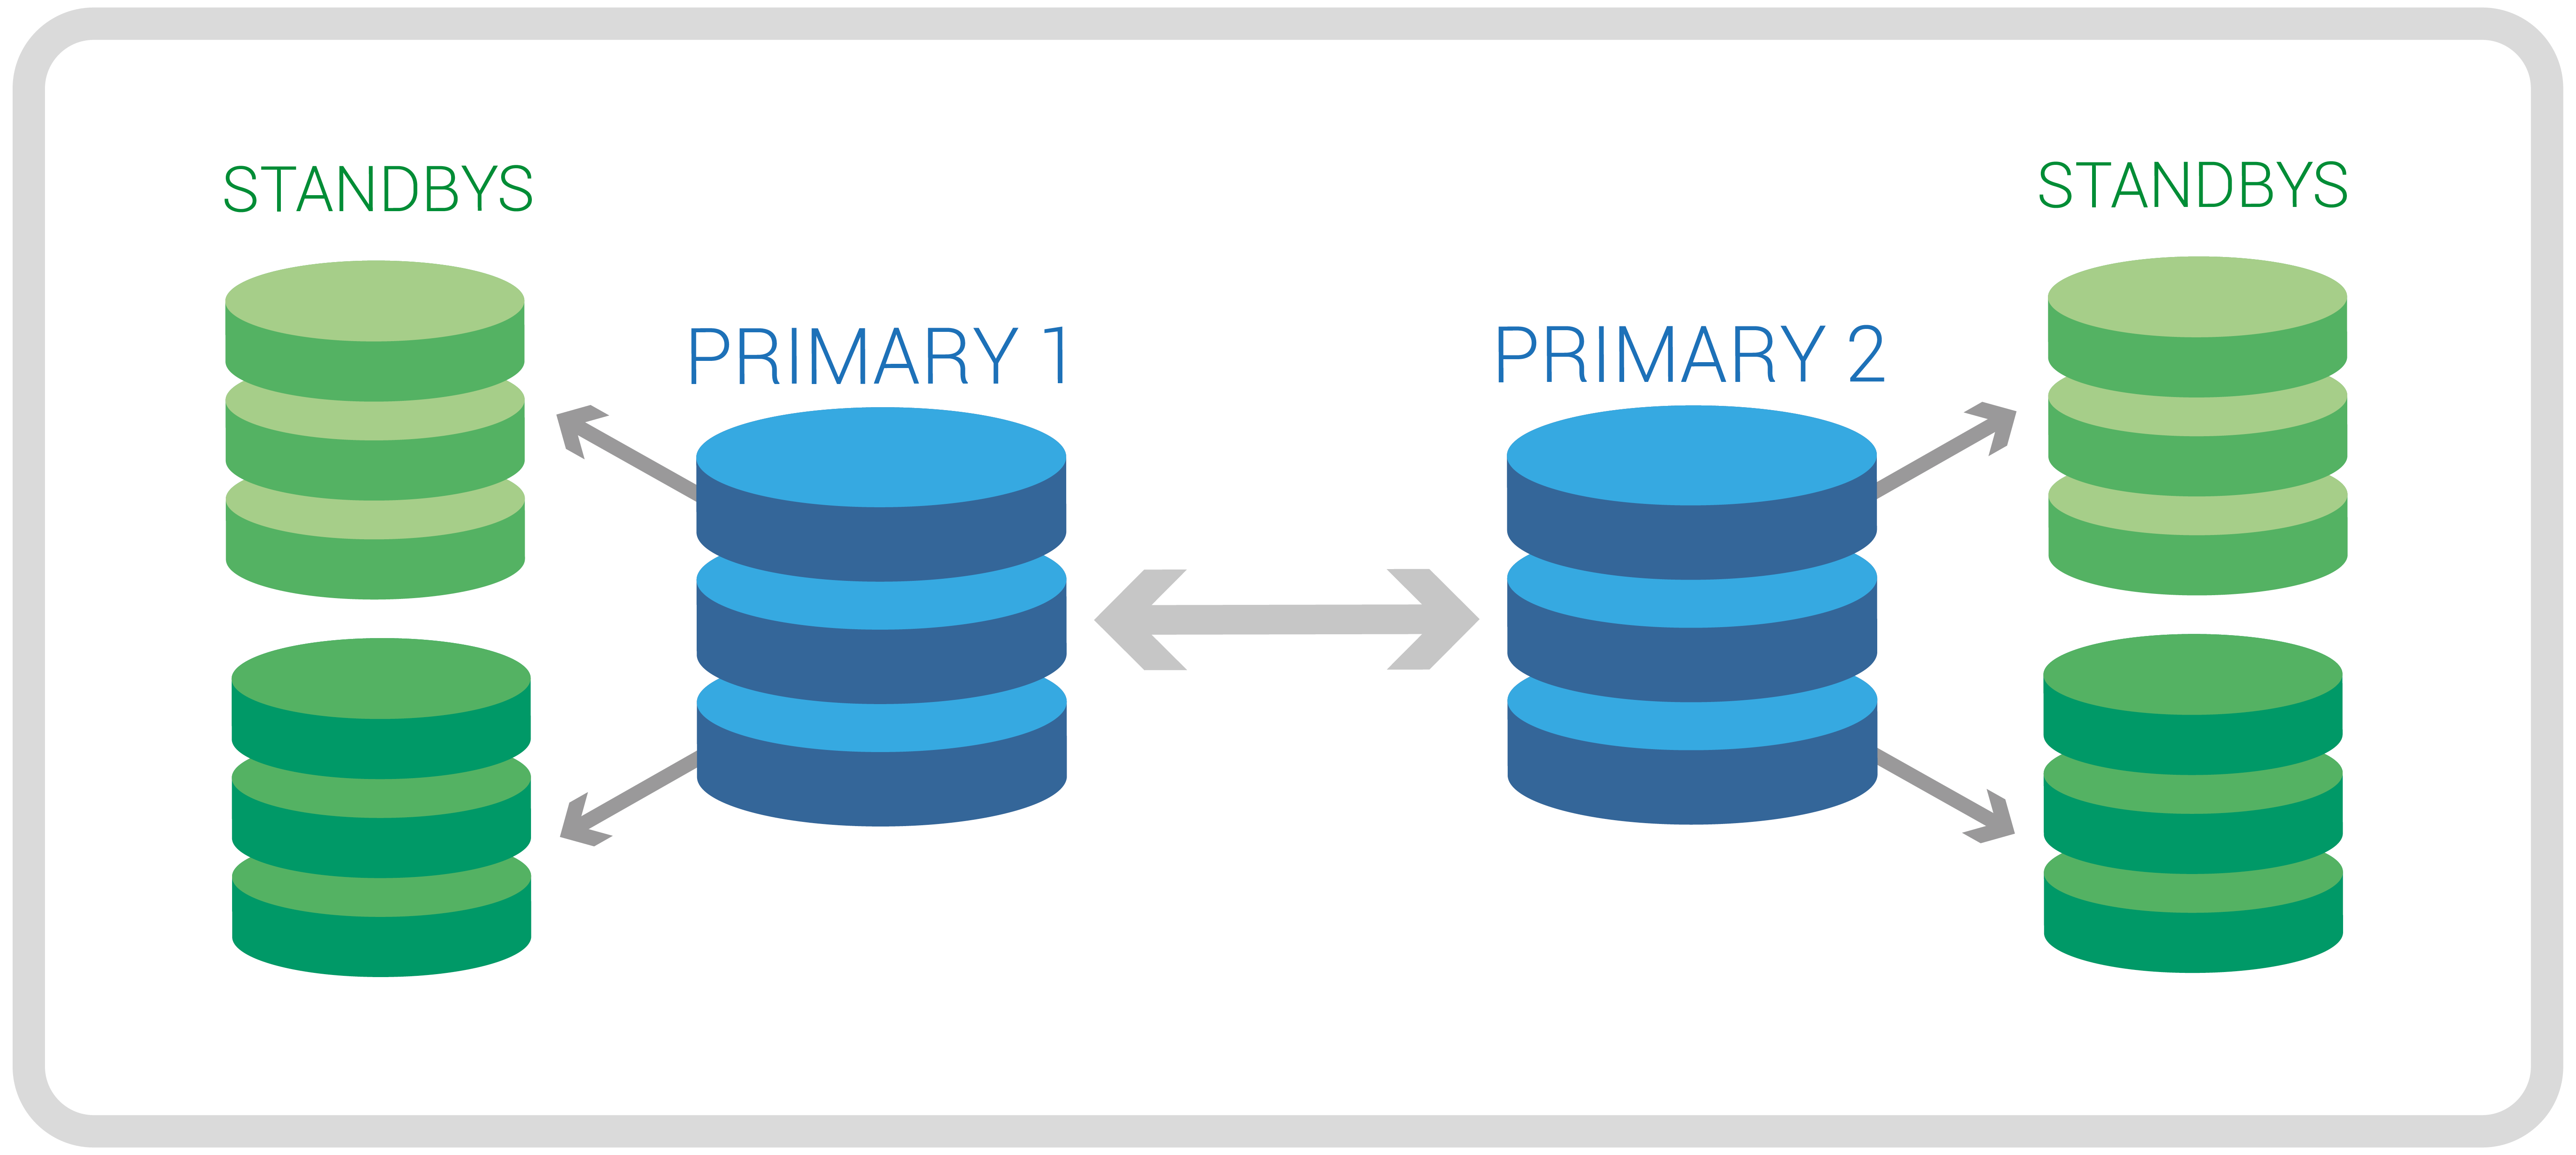 Multi-master replication for geographically distributed PostgreSQL clusters - Cloud Manager